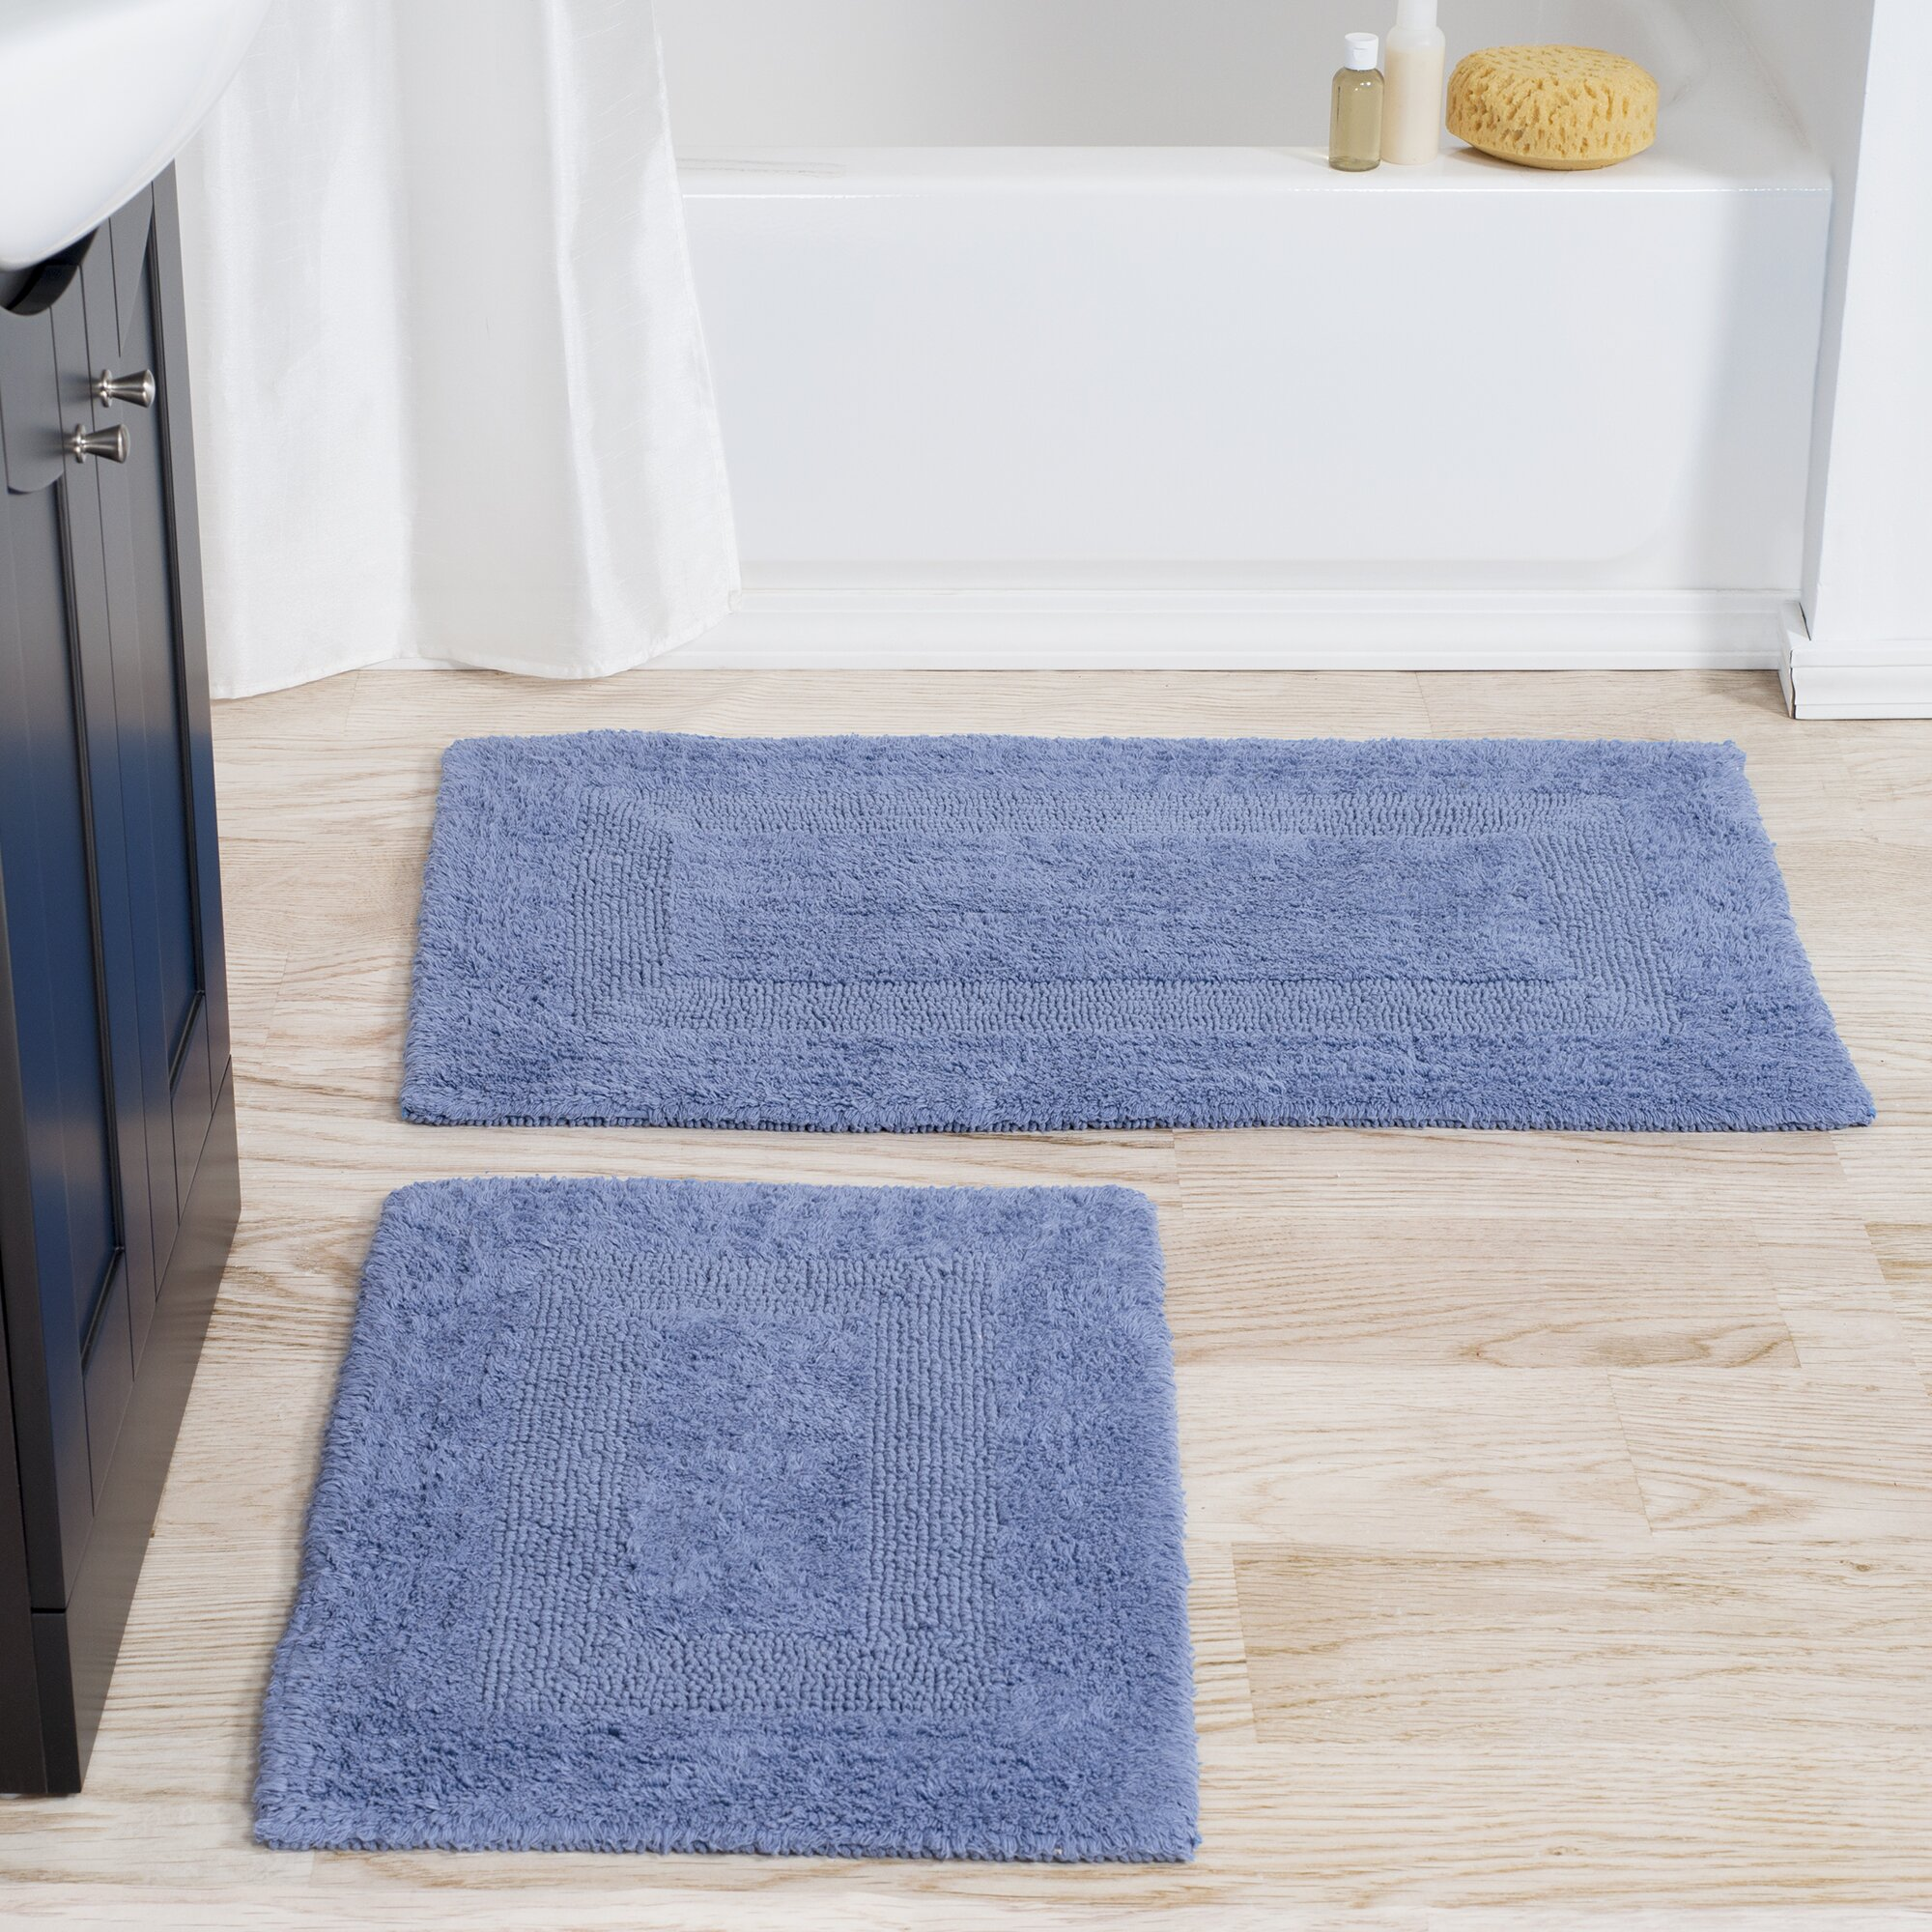 Lavish Home 2 Piece Reversible Bath Rug Set. Lavish Home 2 Piece Reversible Bath Rug Set  amp  Reviews   Wayfair